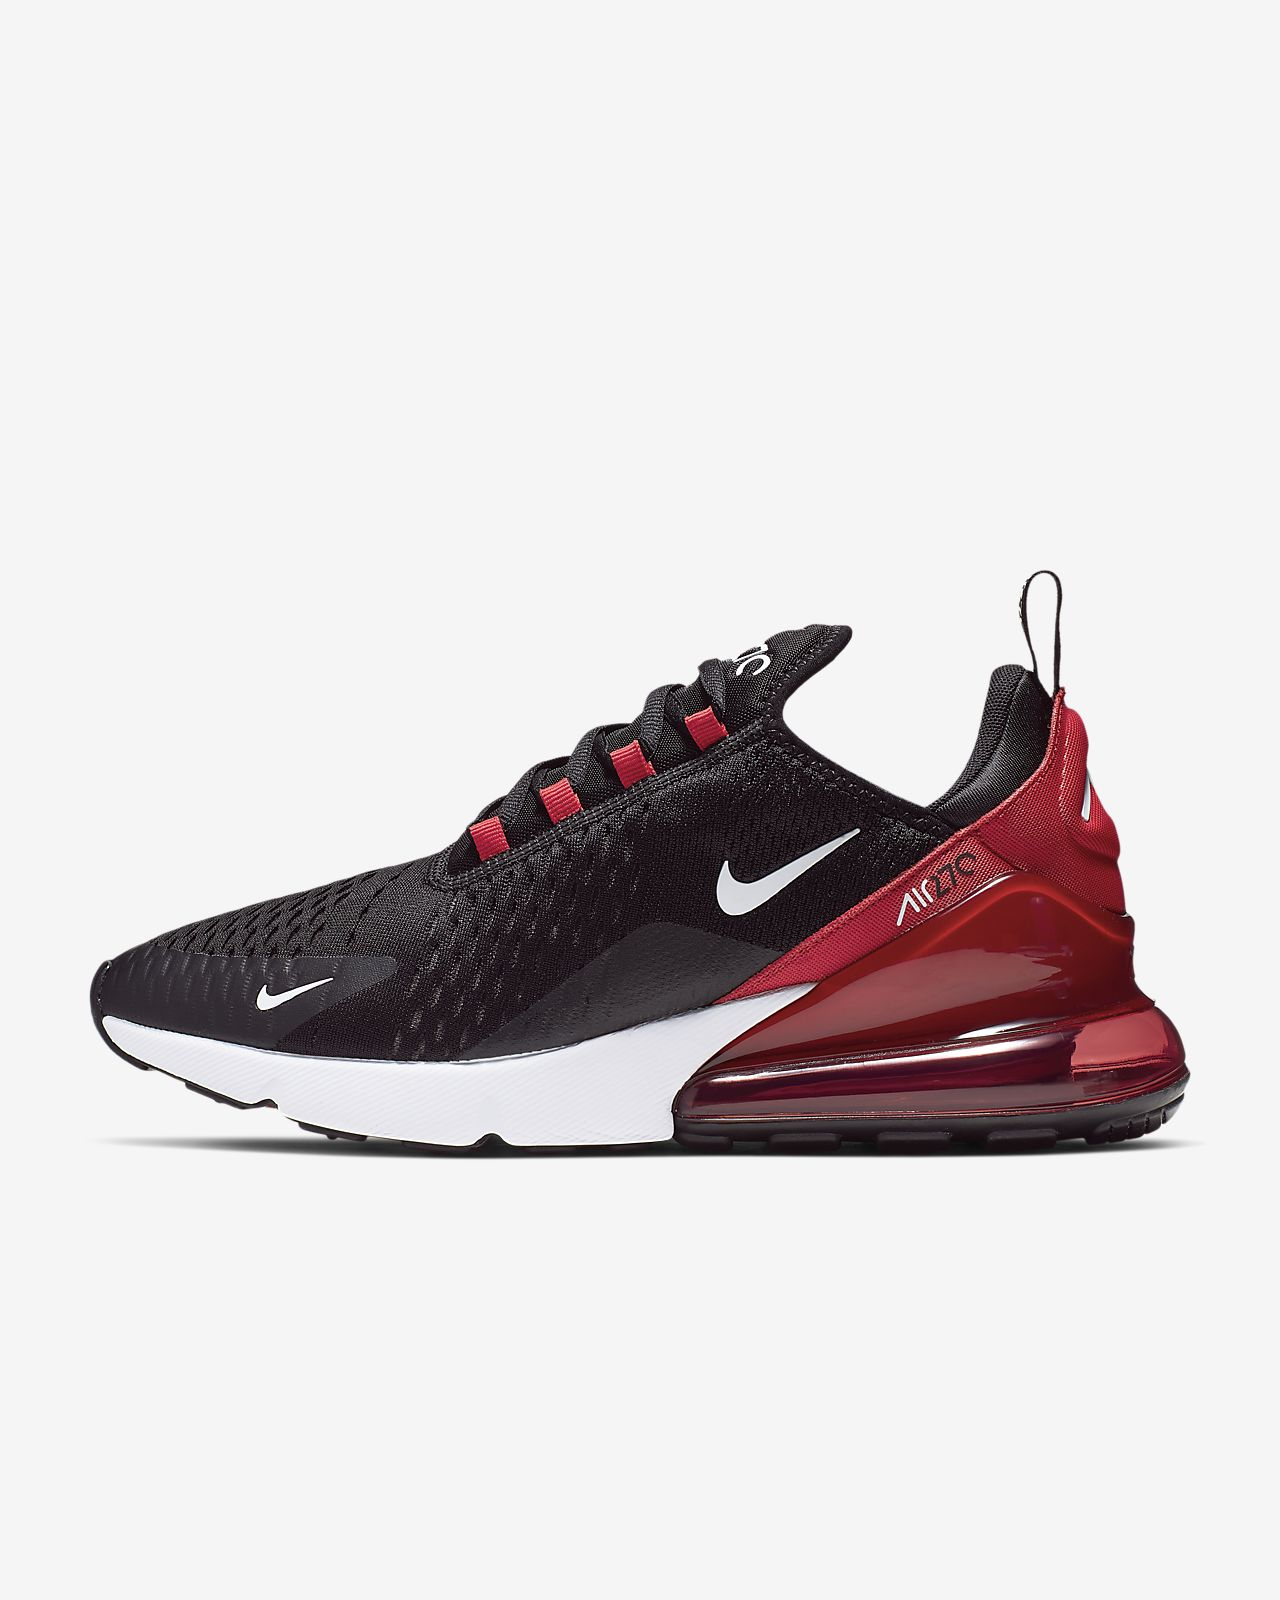 100% authentic b7805 1be07 ... Nike Air Max 270 Herenschoen